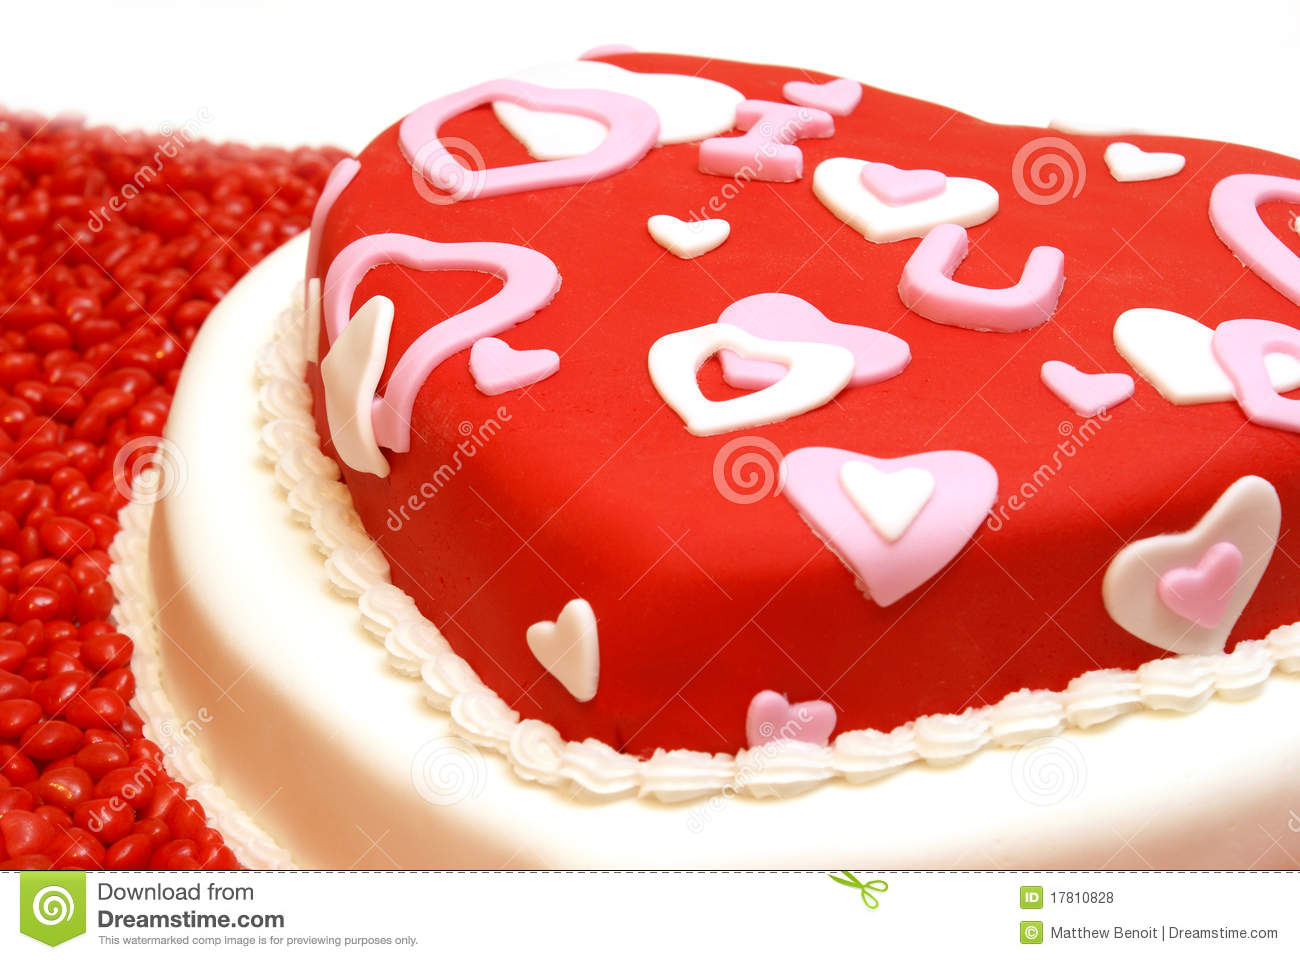 Heart Shaped Cake Stock Photos : Heart Shaped Cake Royalty Free Stock Photos - Image: 17810828